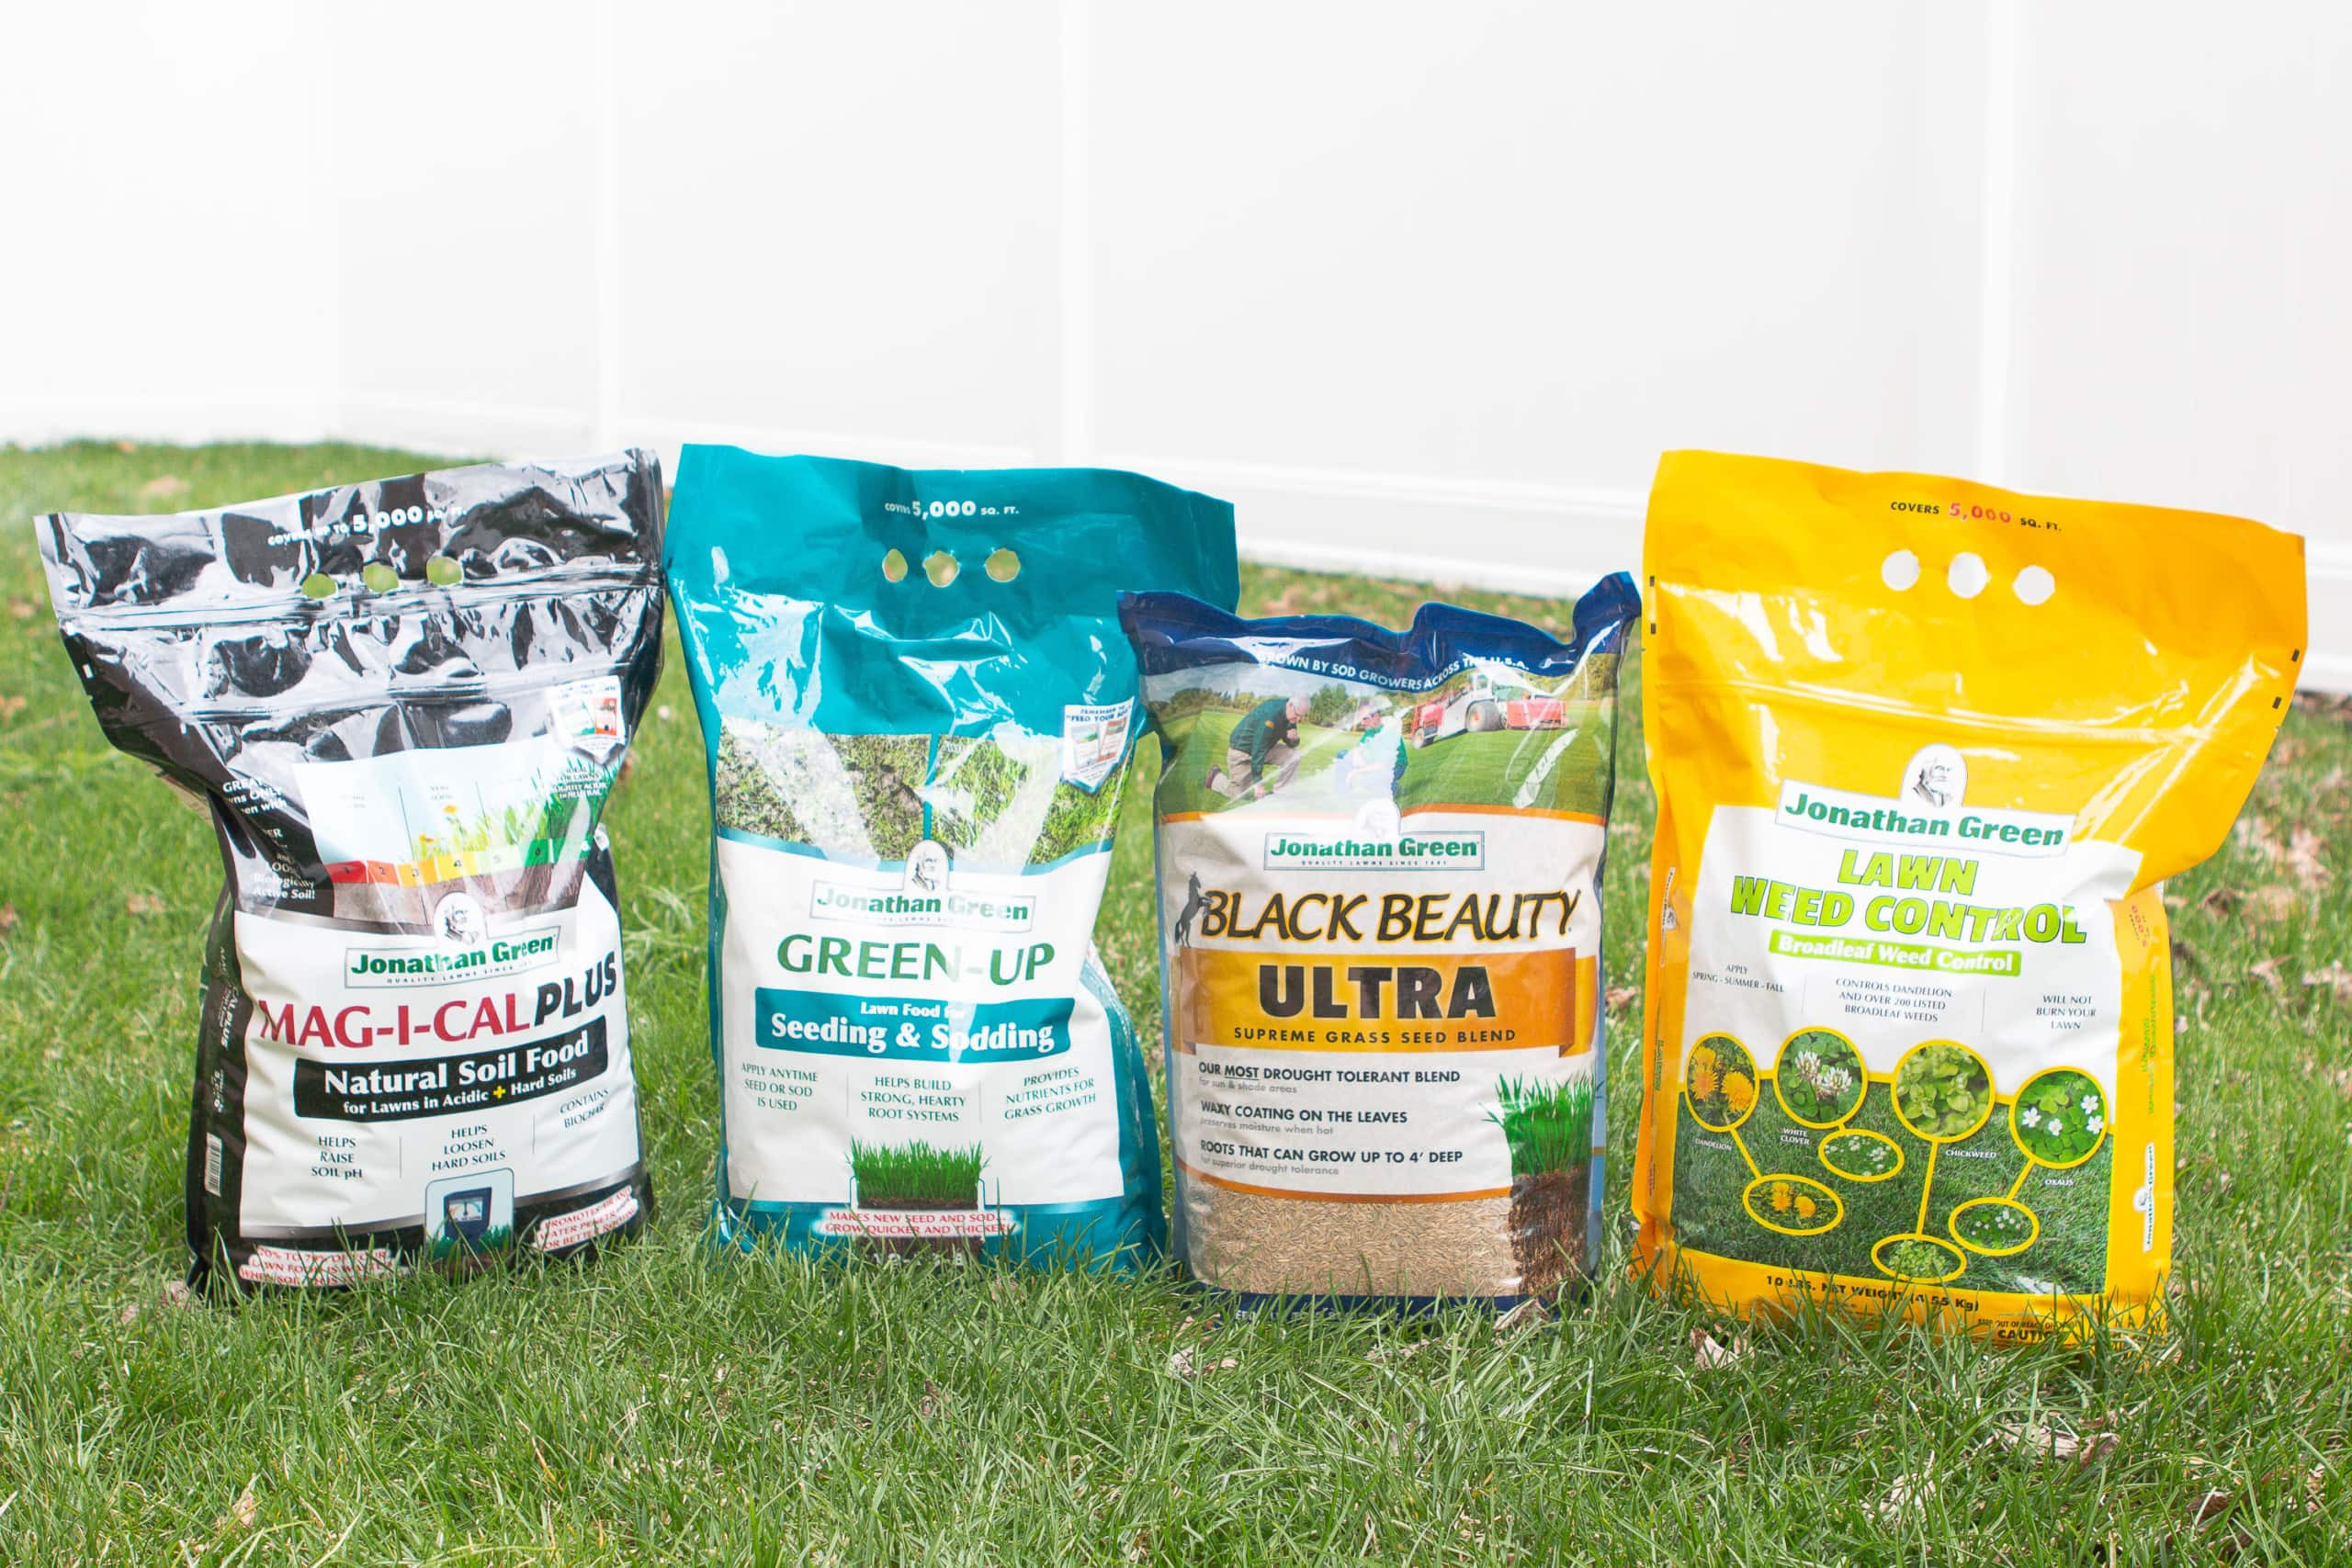 Lawn care products from Jonathan green